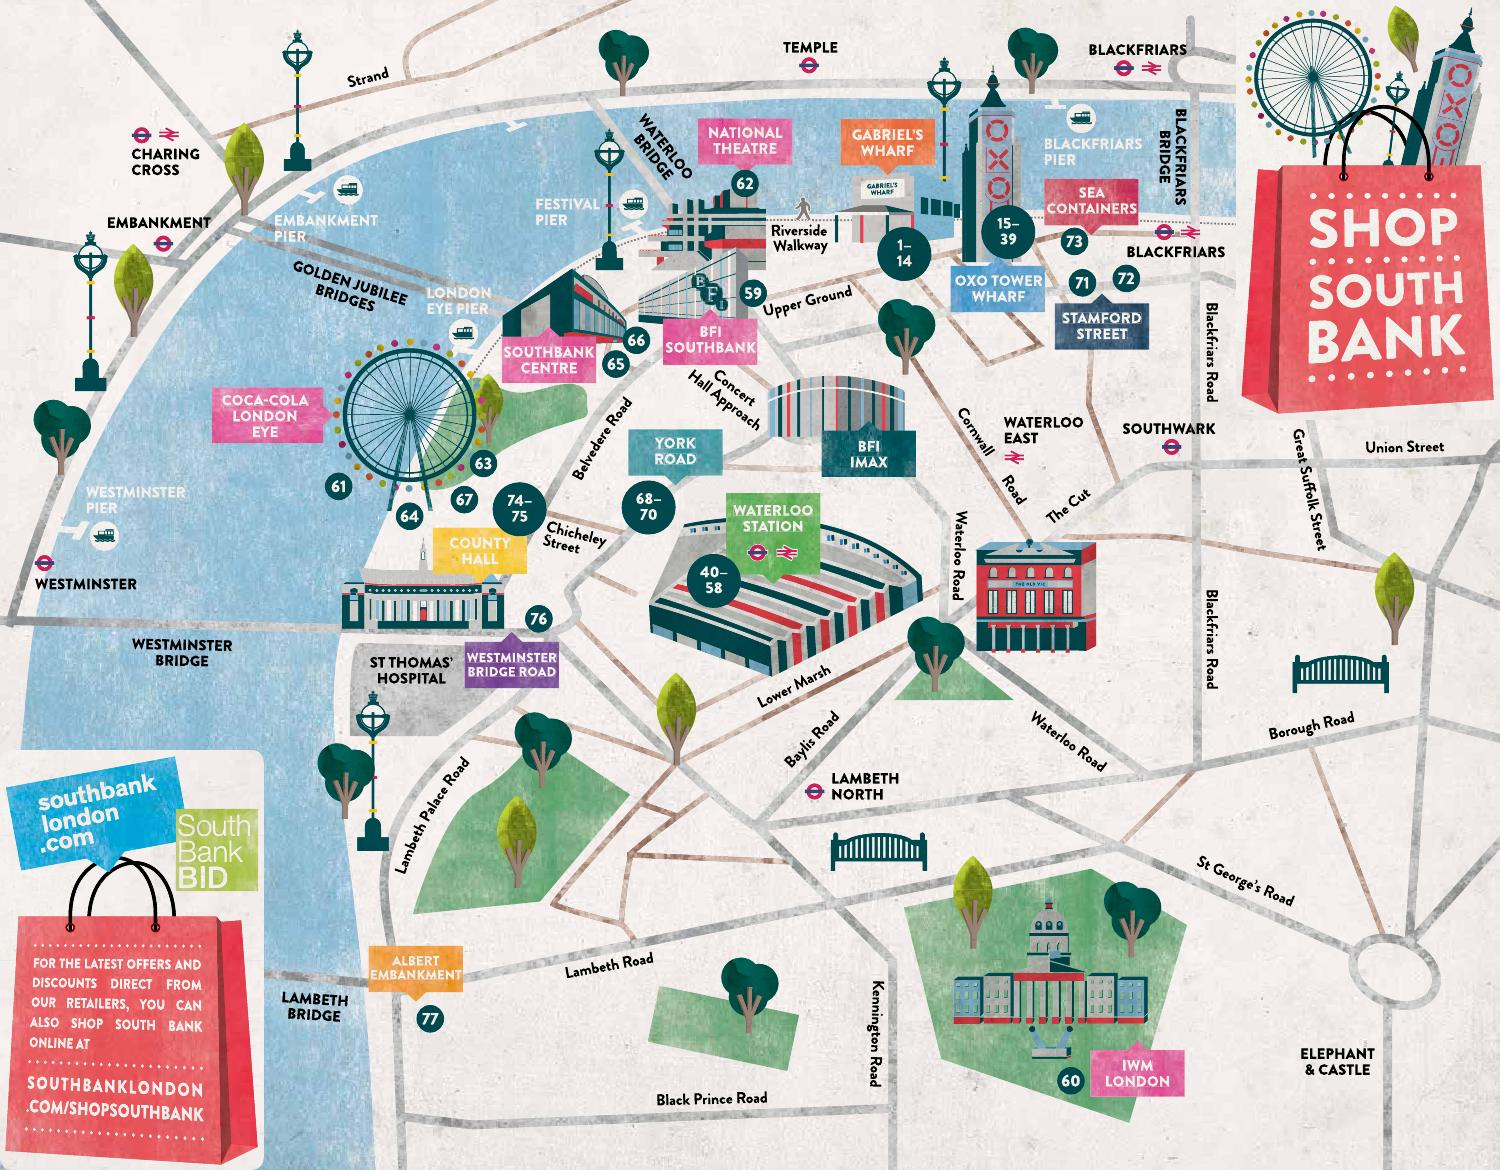 Shop South Bank Map By South Bank London Issuu